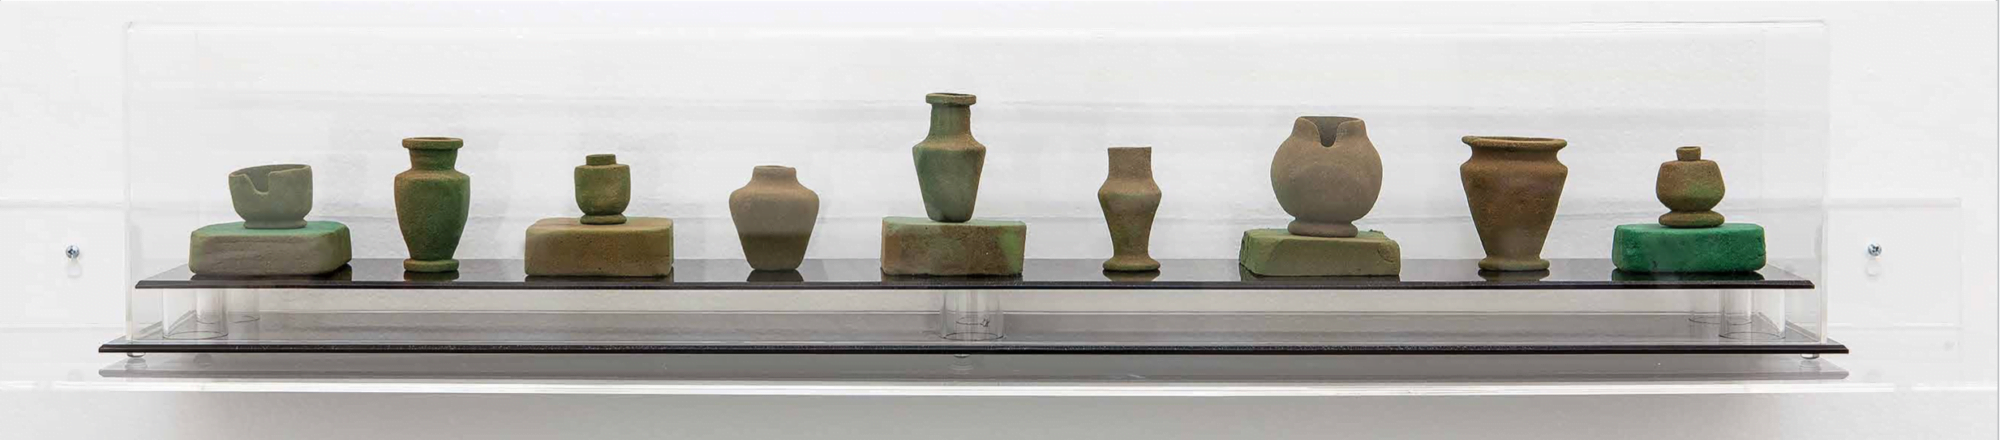 Catherine Bell. Crematorium vessels 2012–13. © the artist, courtesy the artist and Sutton Gallery, Melbourne. Photo: Andrew Curtis.